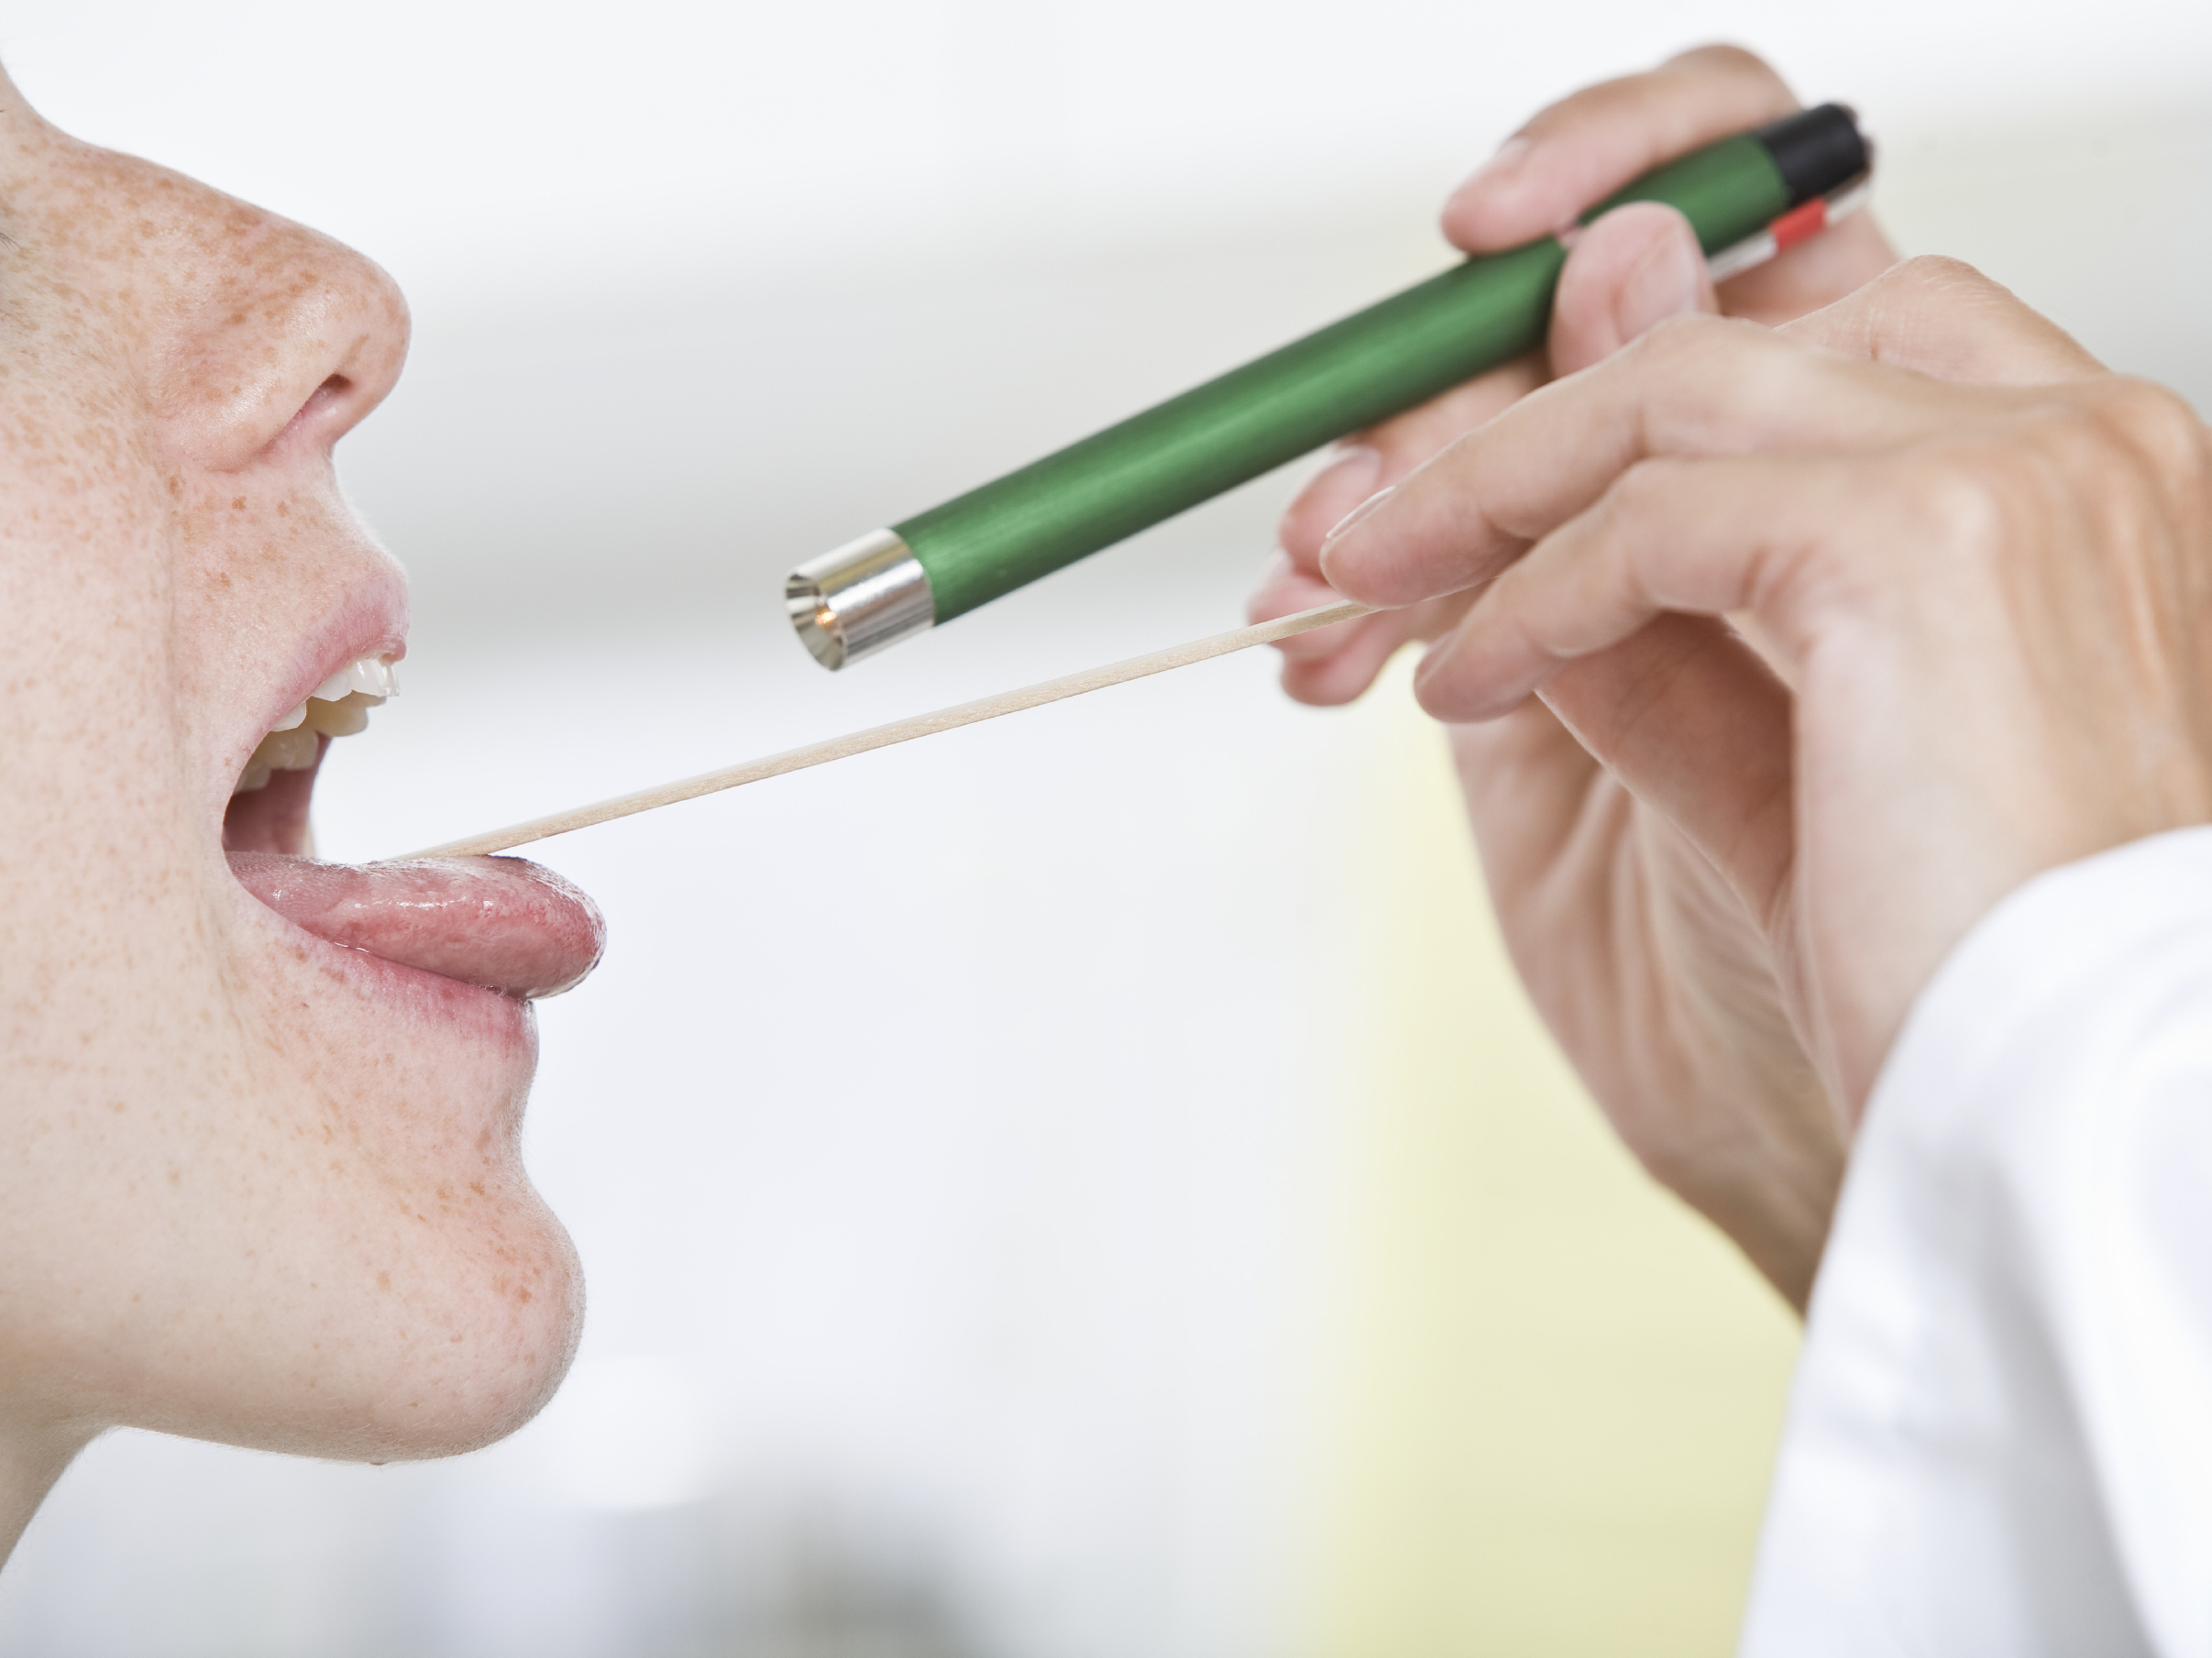 How to gargle with Chlorophyllipt: how to dilute and how much to apply 7